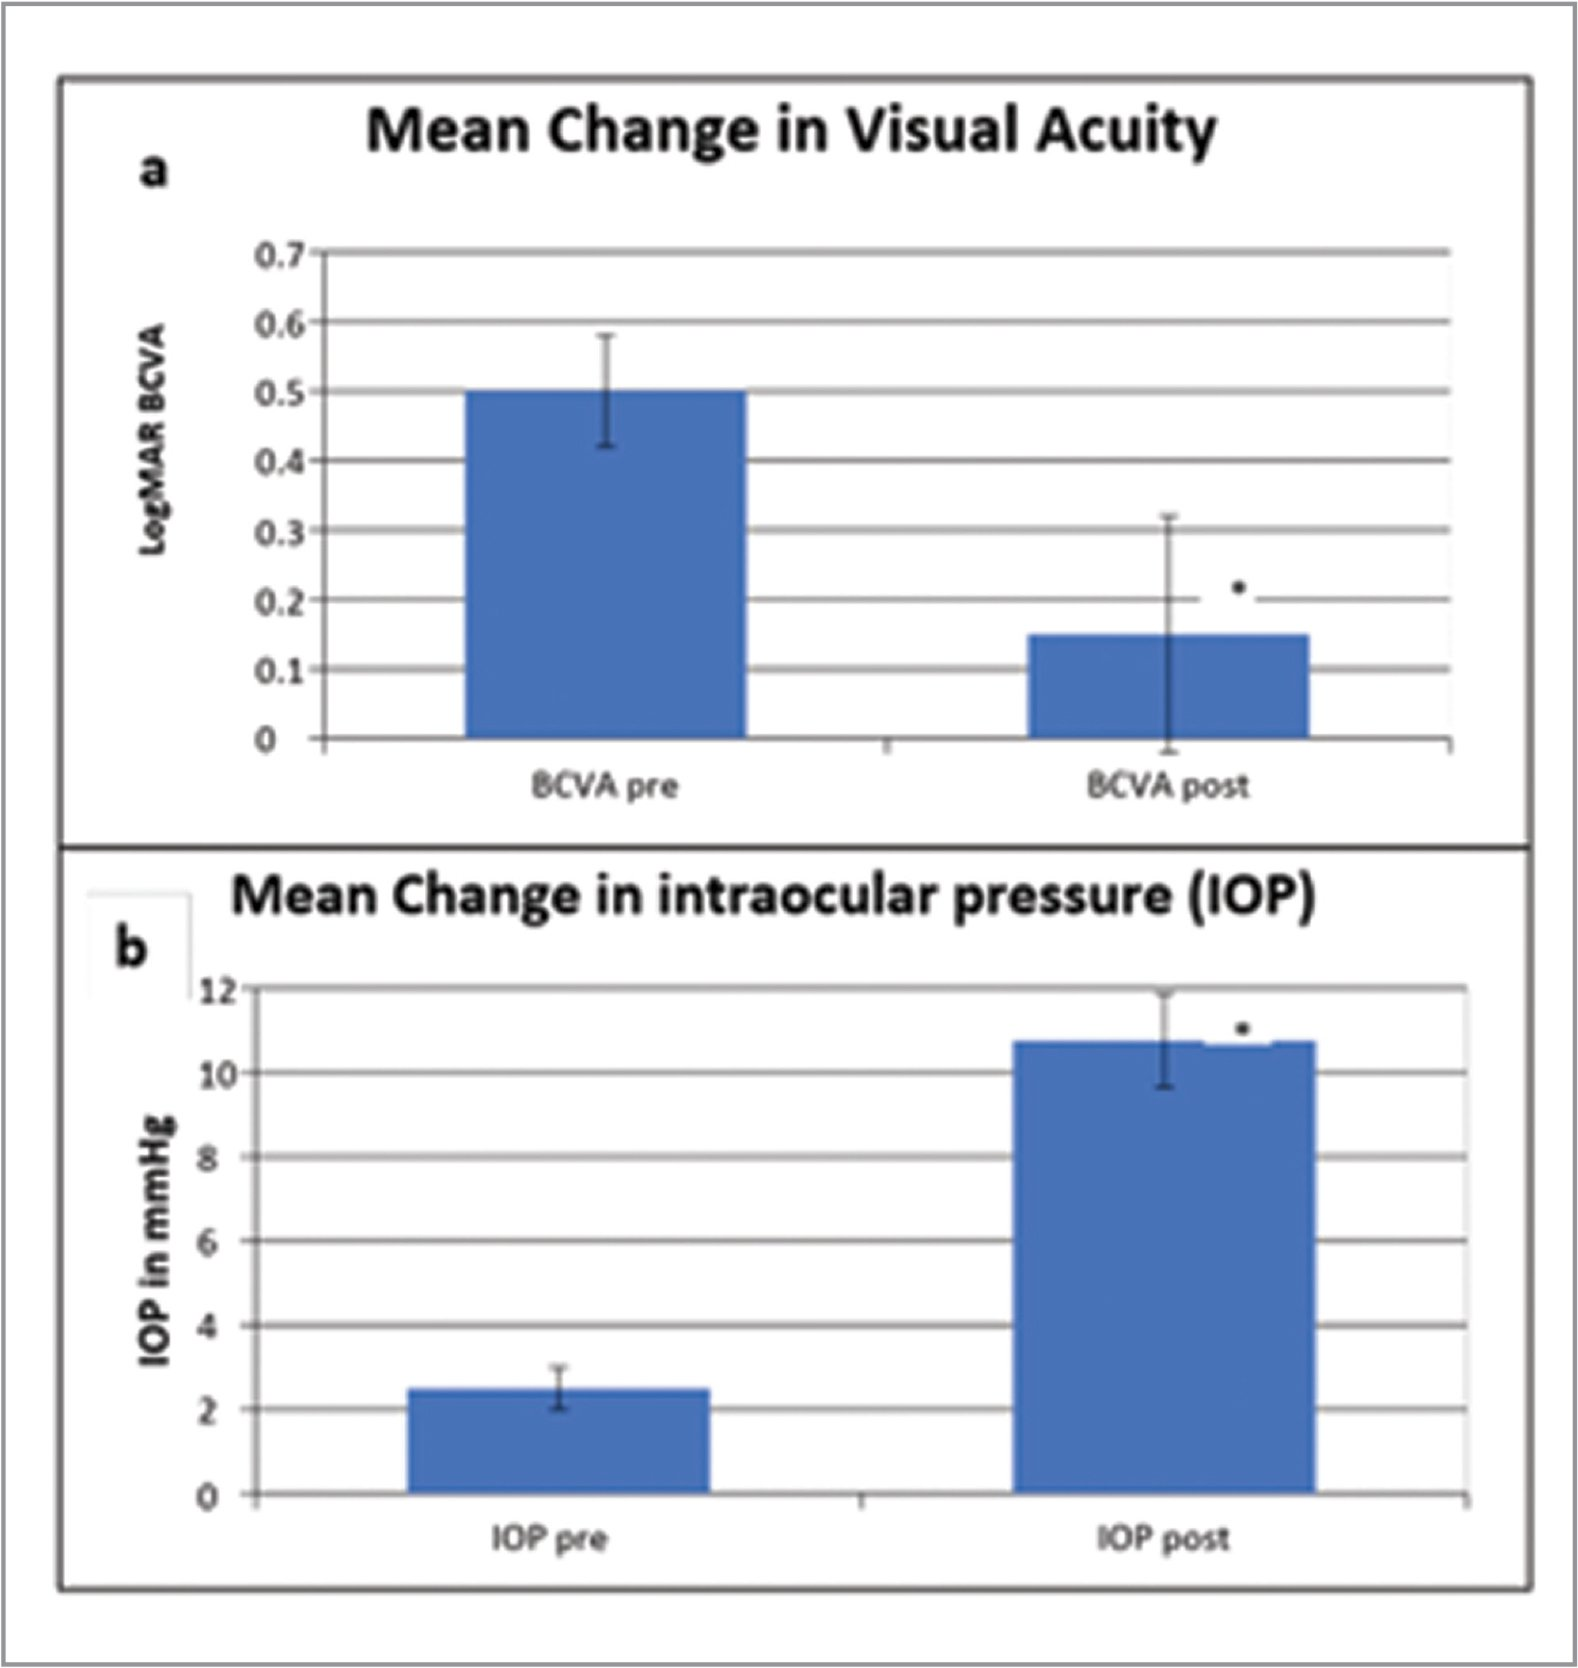 Average change in best-corrected visual acuity (a) and intraocular pressure (b) of patients after surgery; *P value < .05.